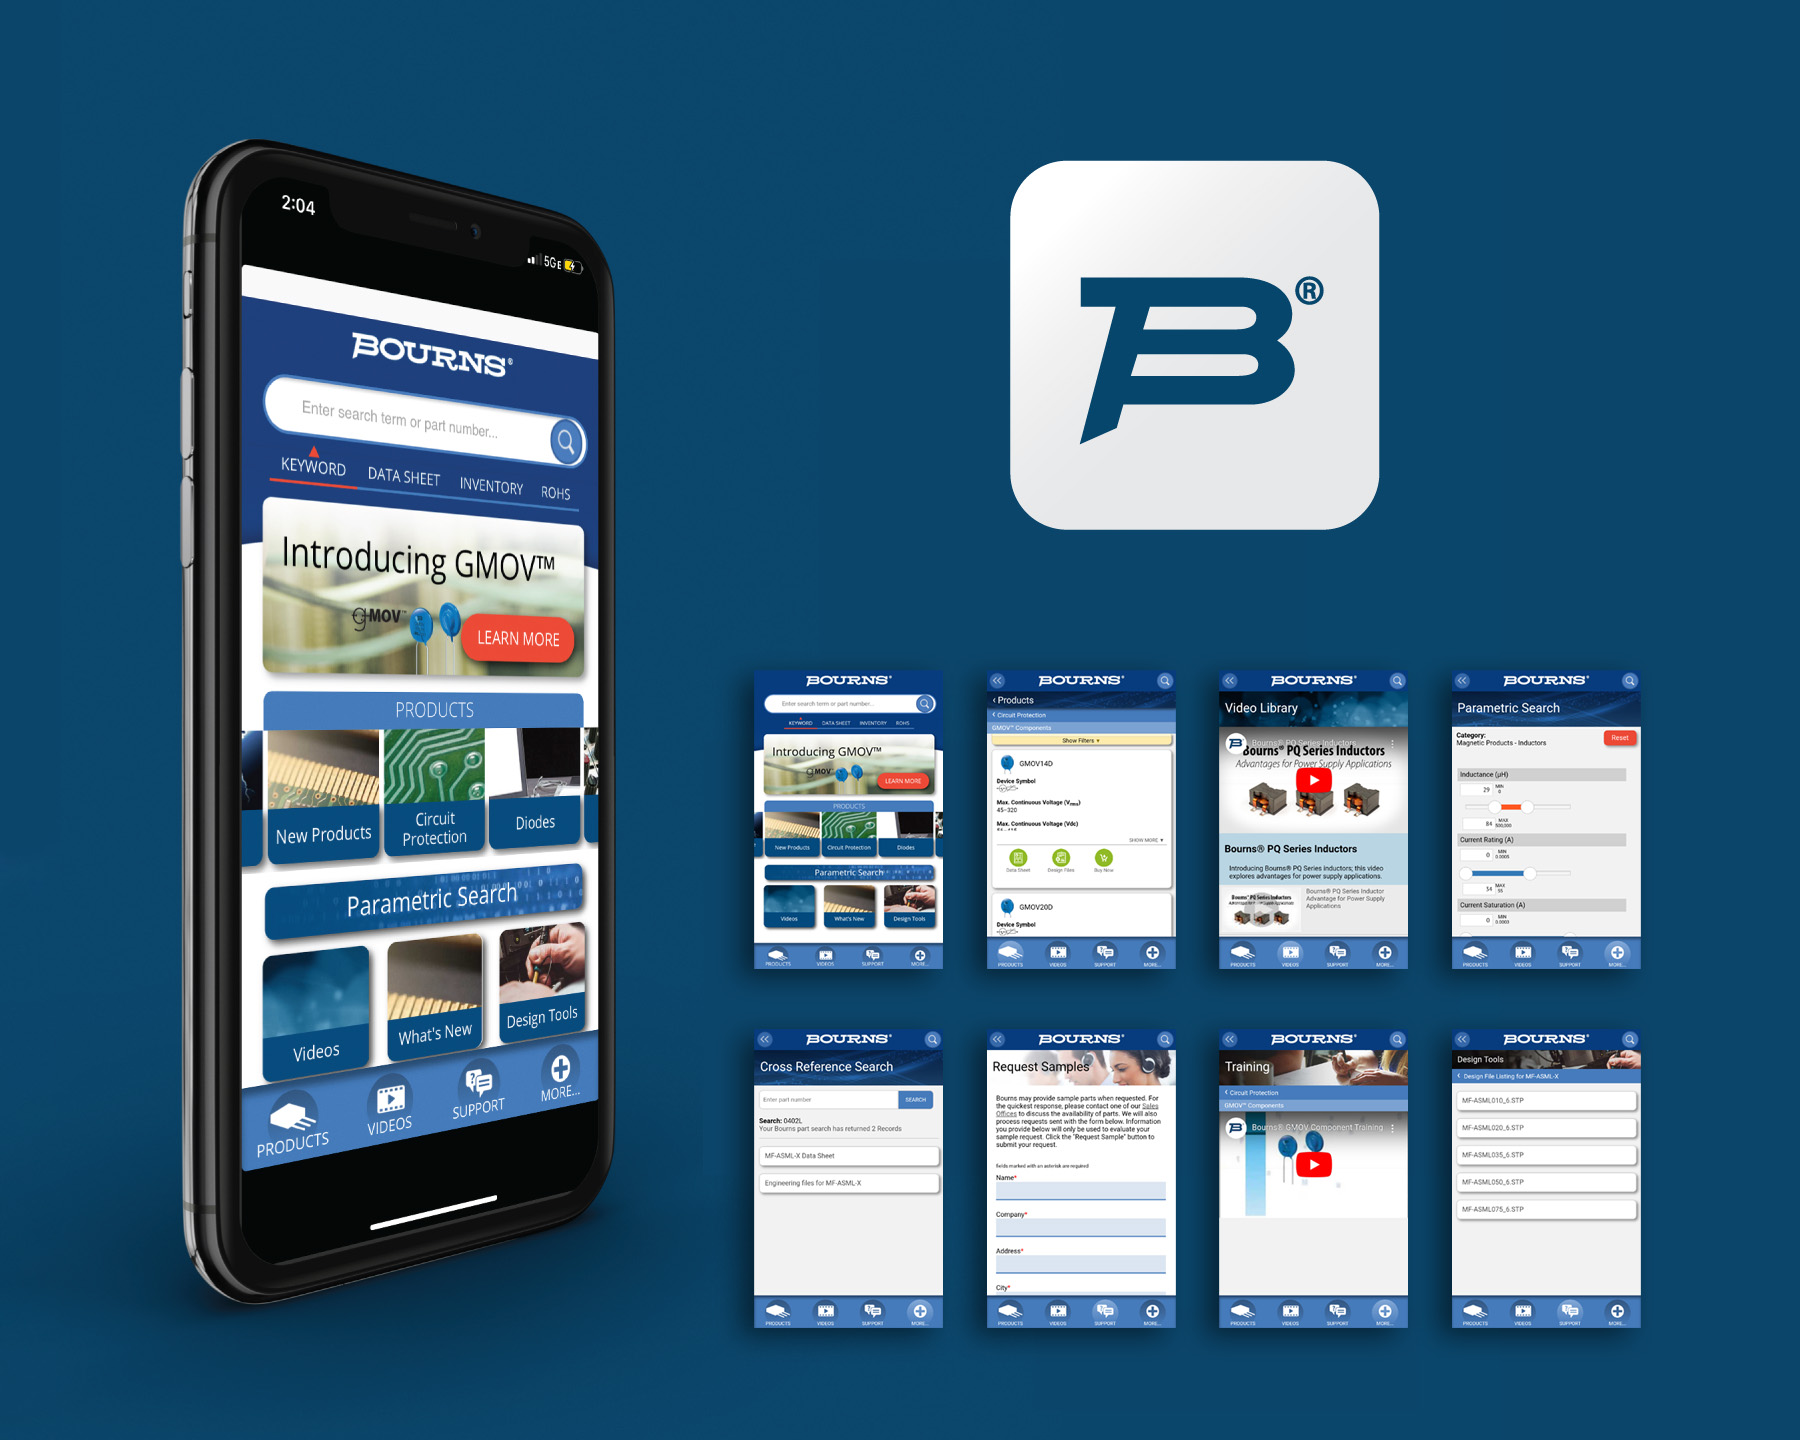 Bourns Launches Mobile App for iPhone and Android